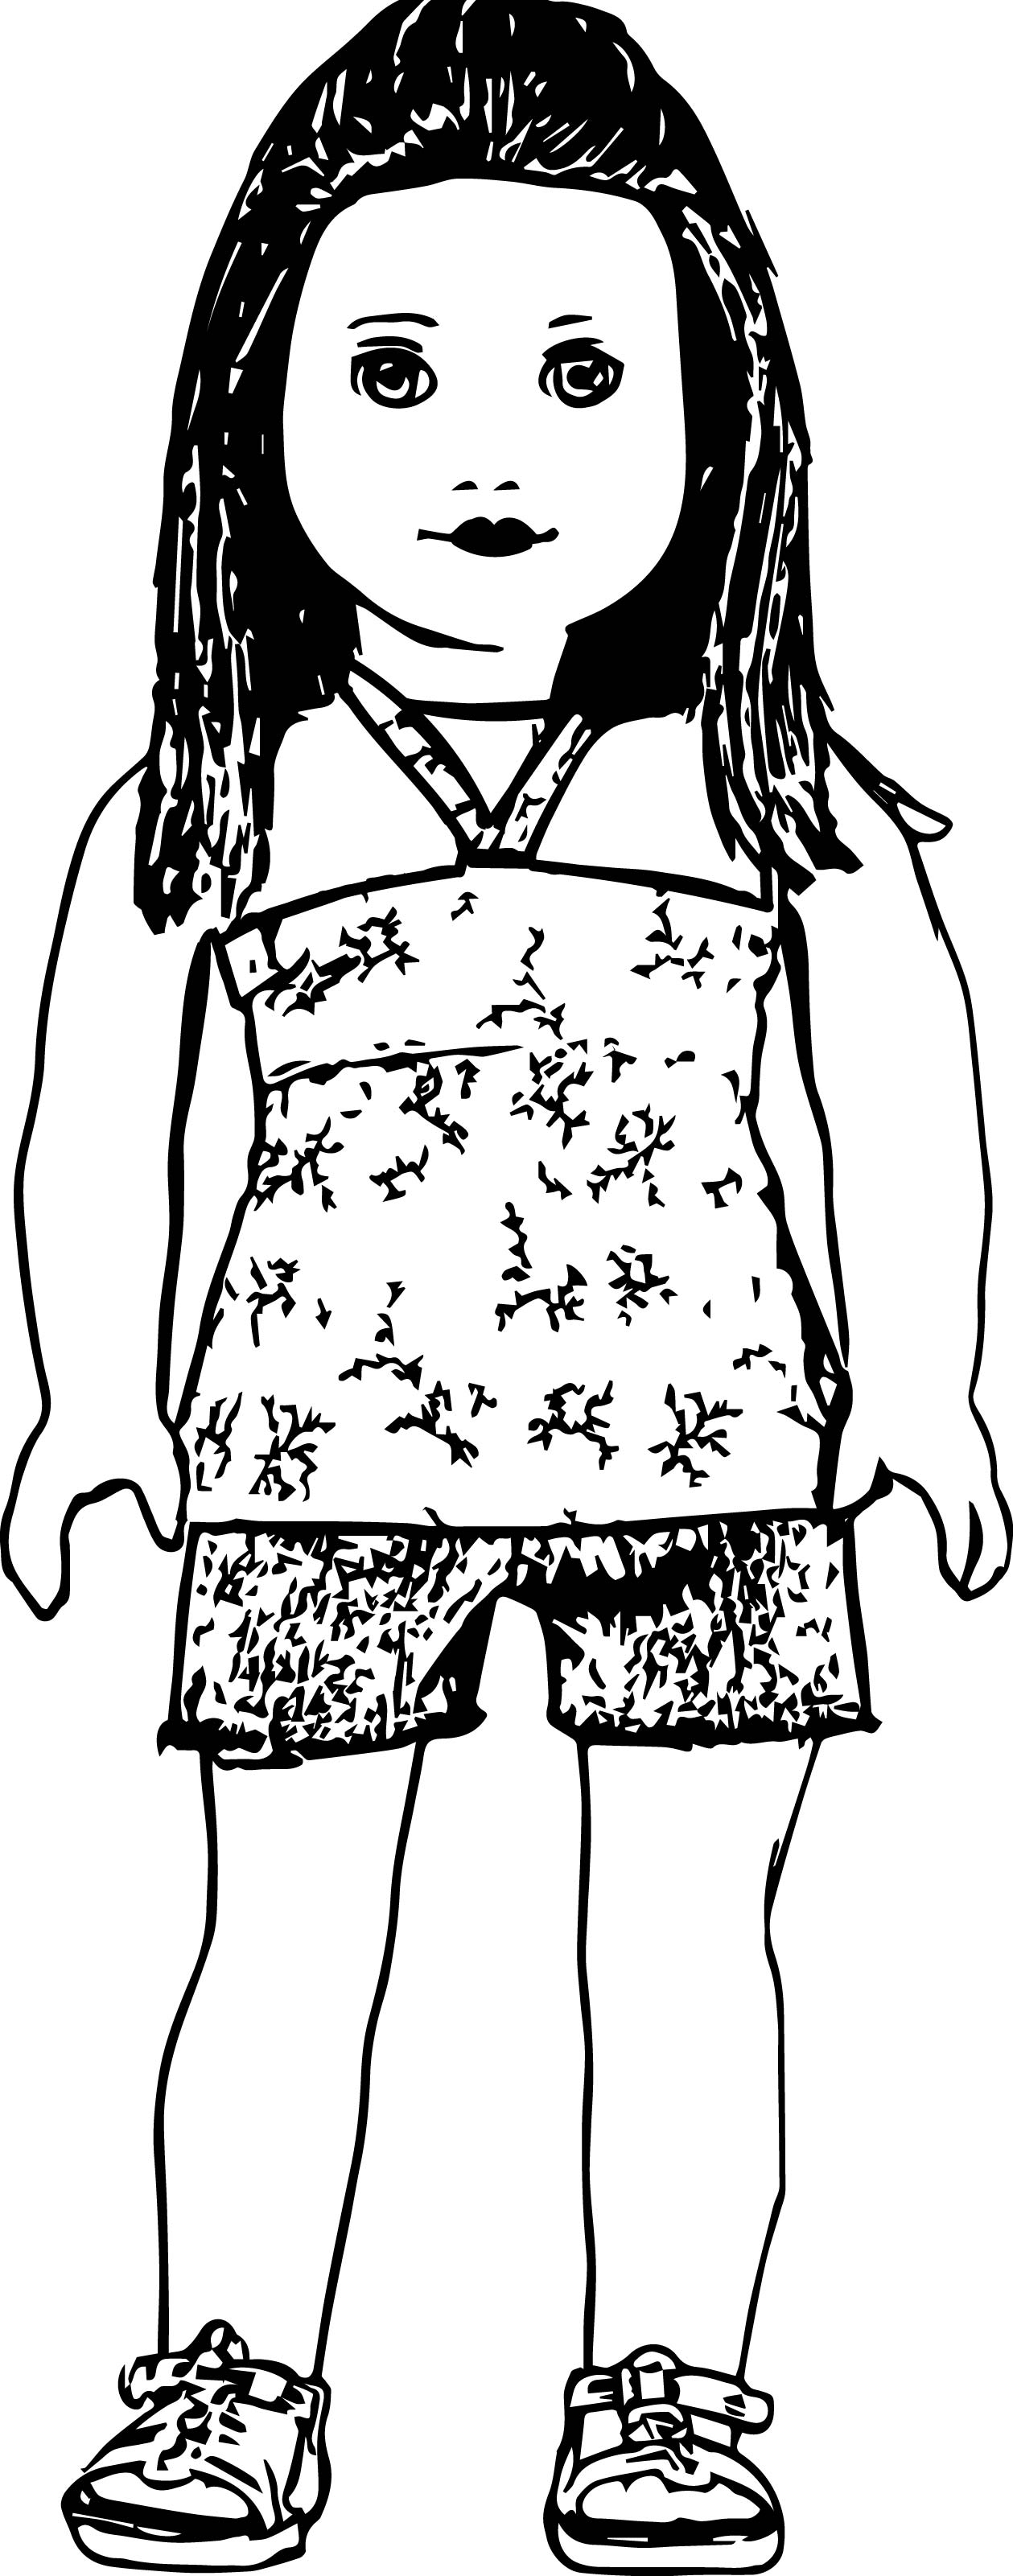 american girl doll coloring pages to print american girl doll drawing at getdrawings free download girl print american pages doll coloring to